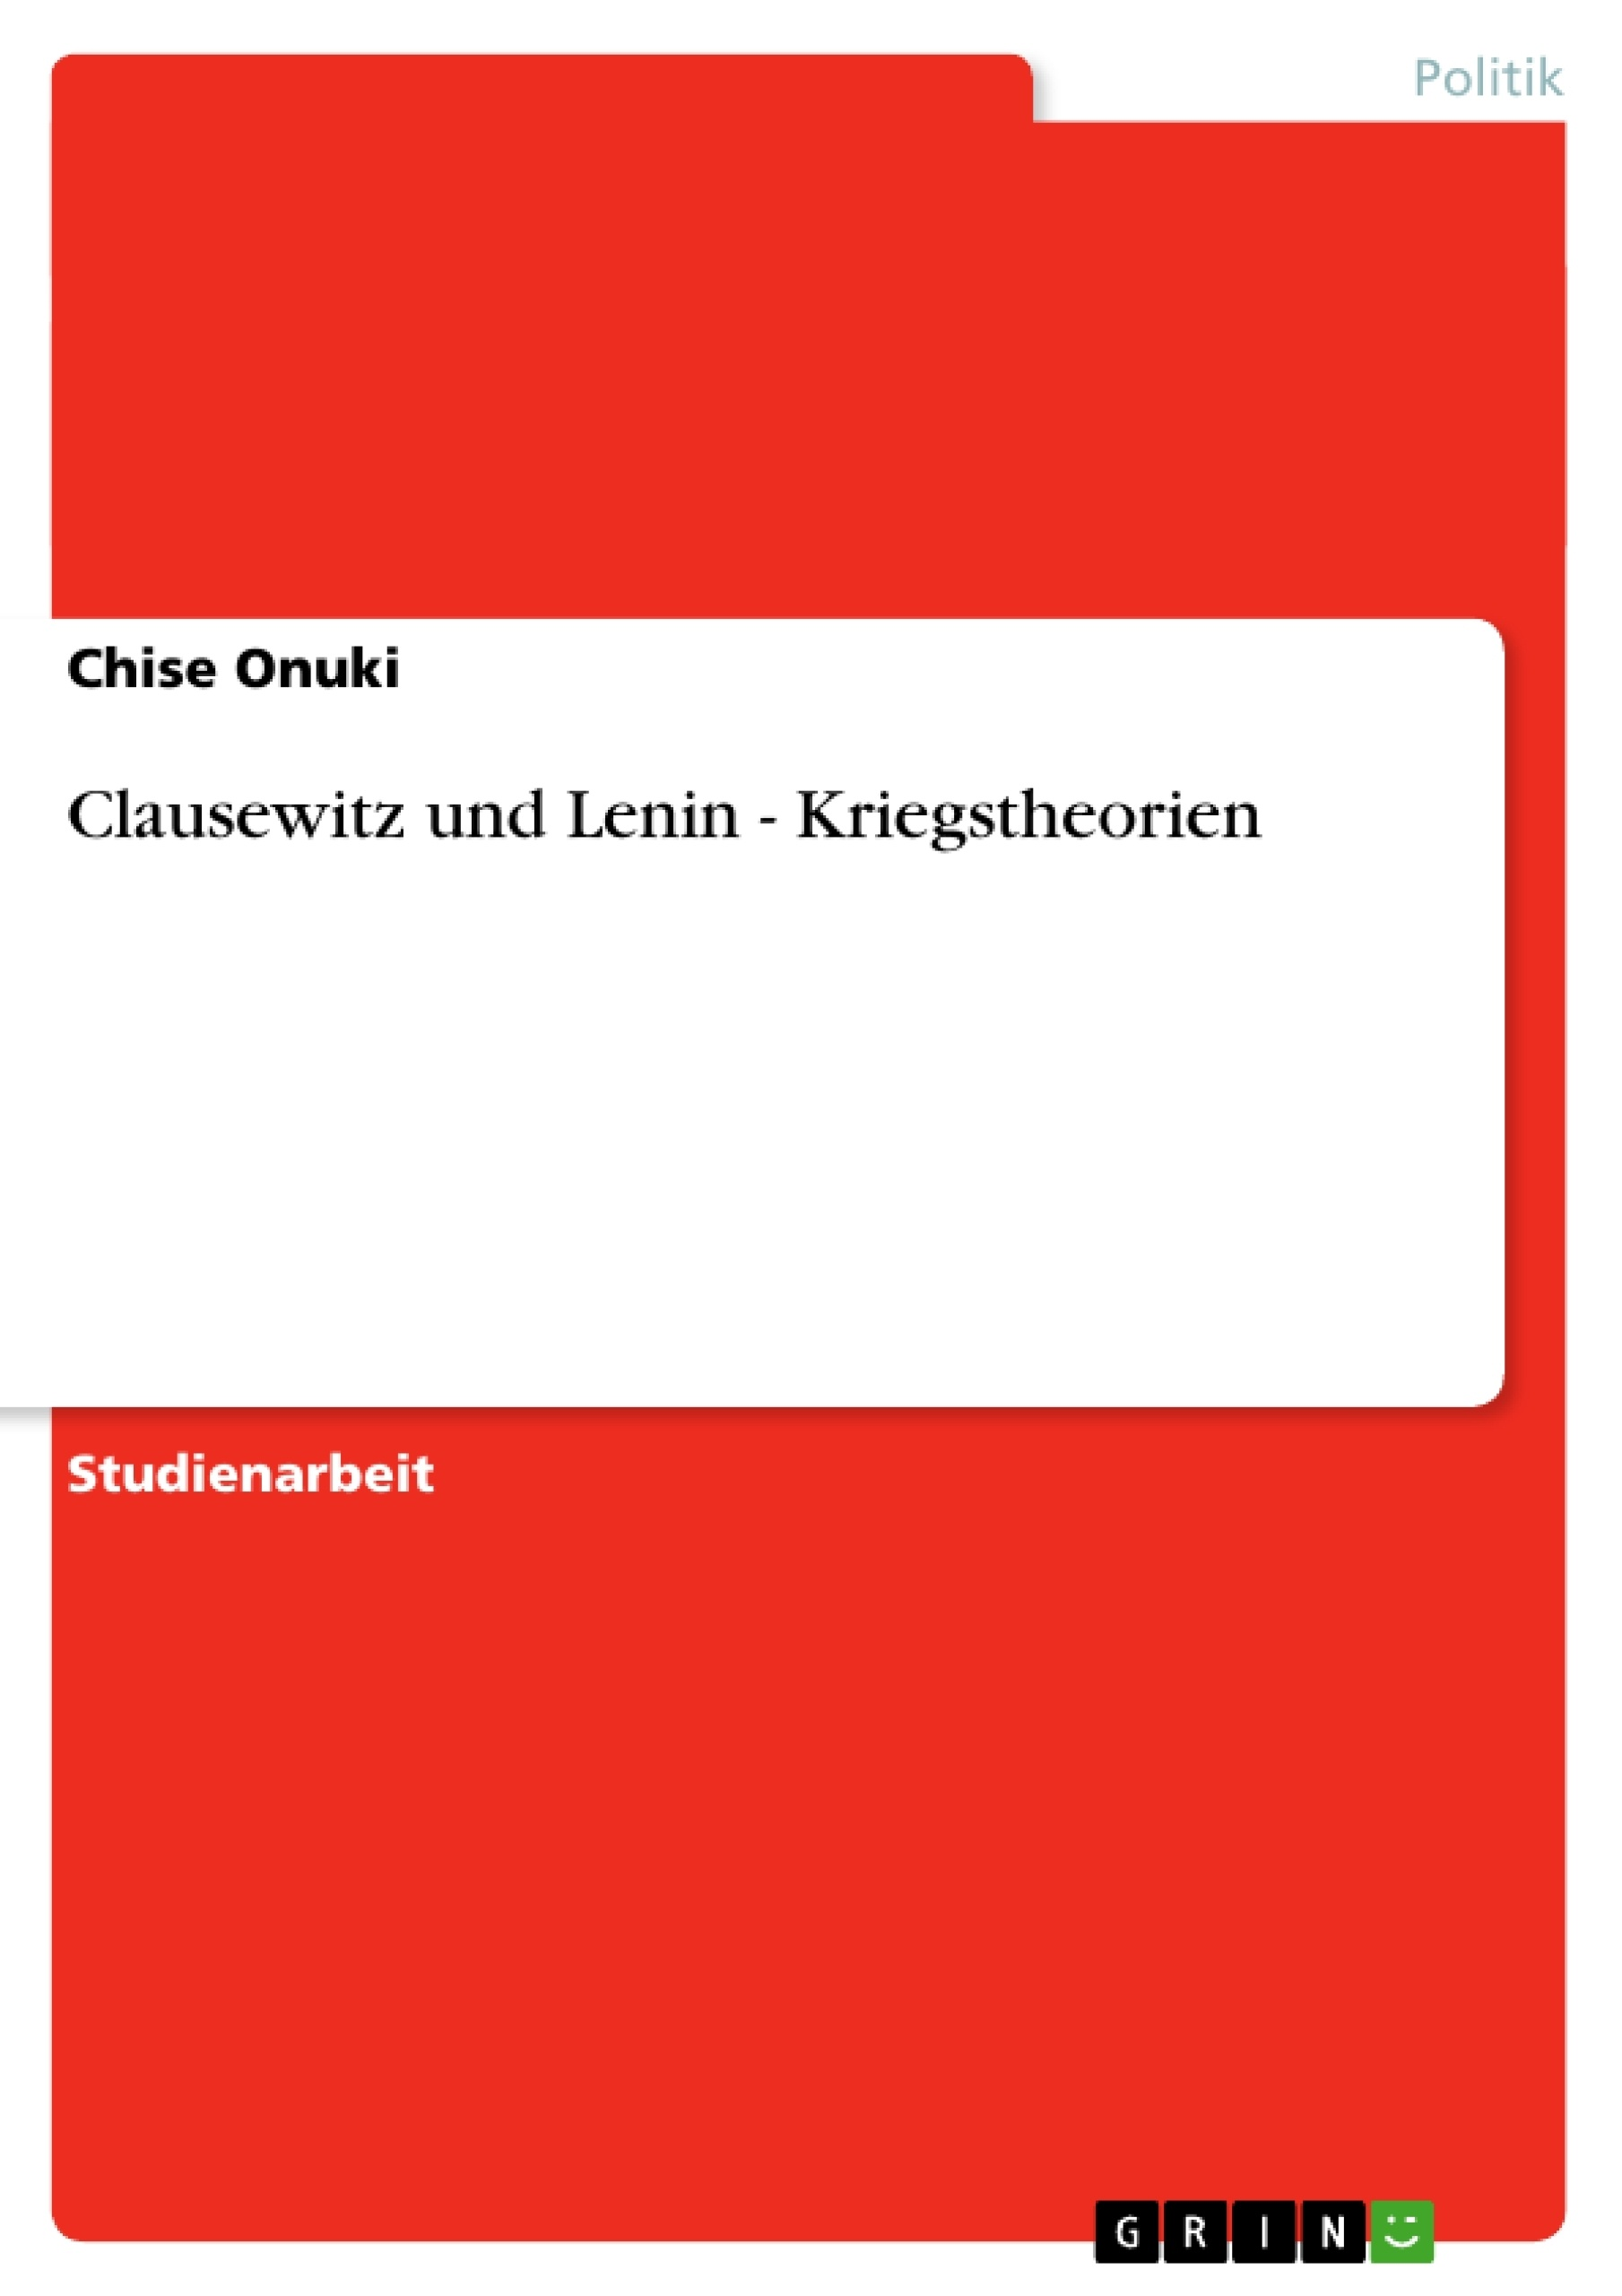 """lenins revolution essay Lenin puts faith in revolution and observes """"the proletariat needs state power, the centralized organization of force, the organization of violence, both for the purpose of crushing the resistance of the exploiters and for the purpose of guiding the great mass of the population in the work of organizing the socialist economy."""